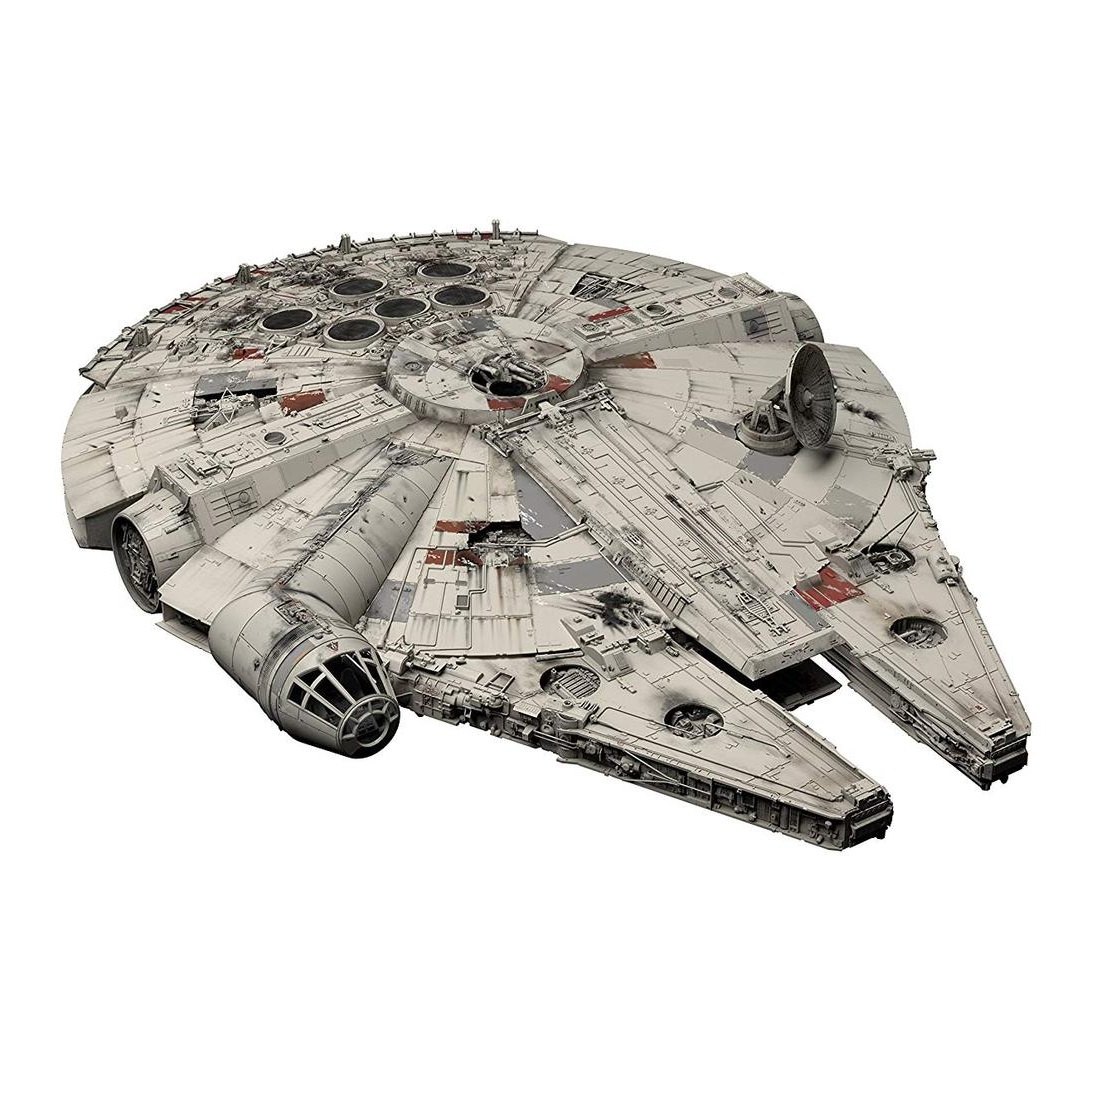 Revell Germany Millennium Falcon